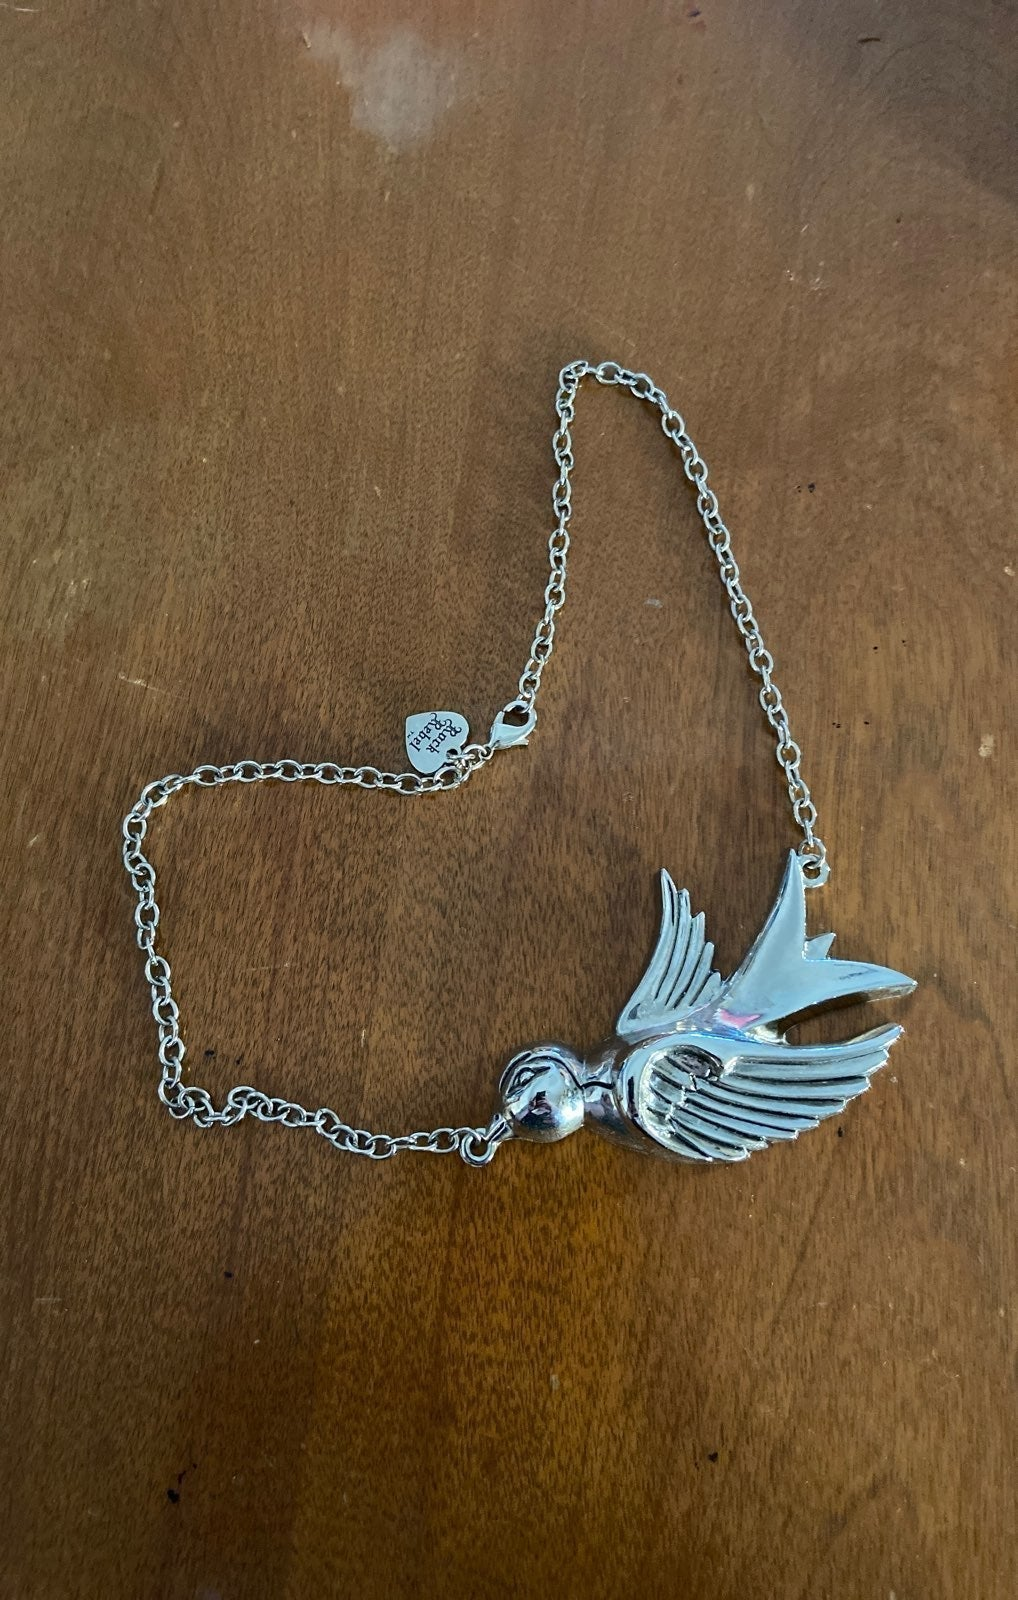 Rock Rebel swallow necklace